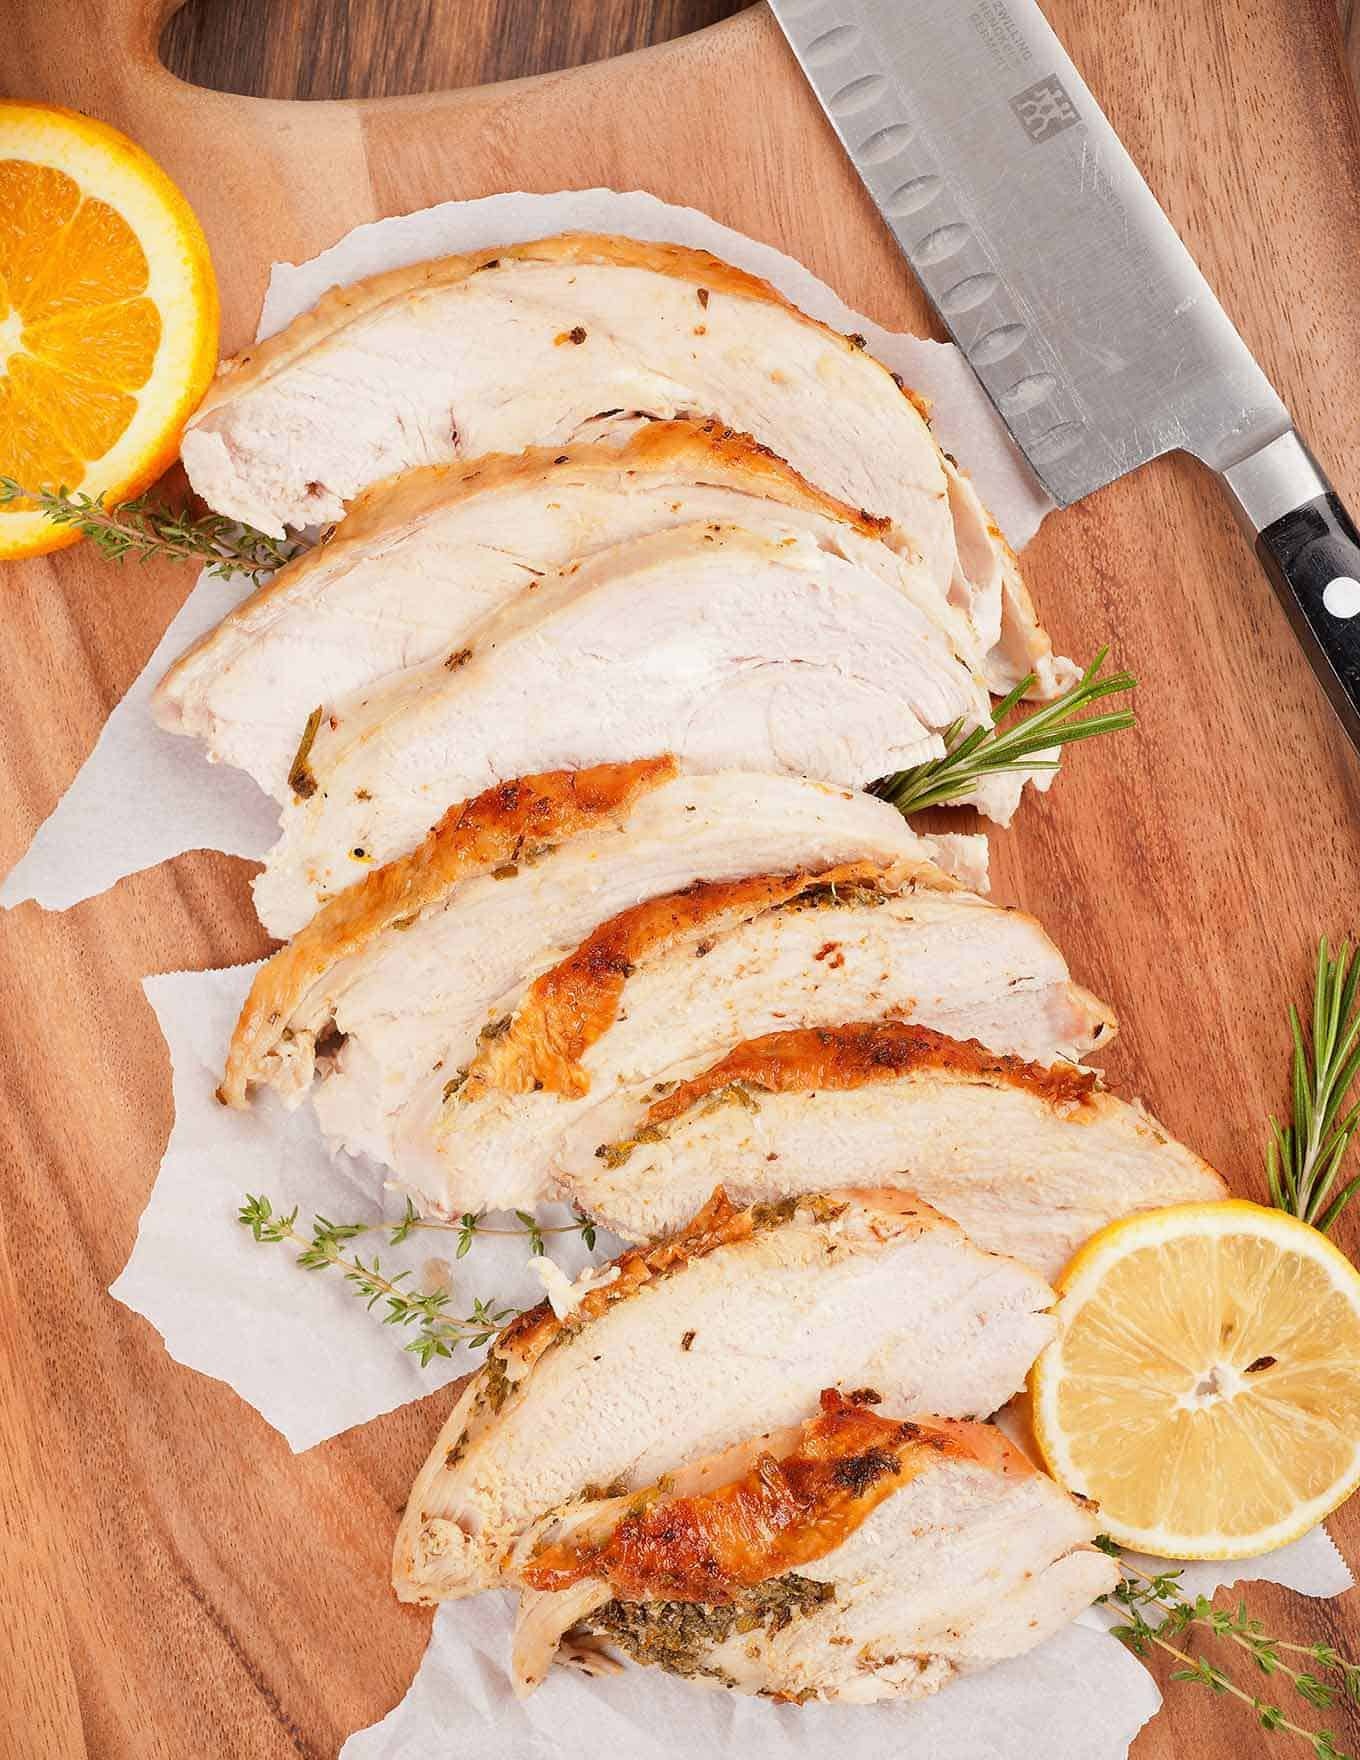 Slices of roasted turkey breast on a cutting board with carving knife and lemon and orange rounds.